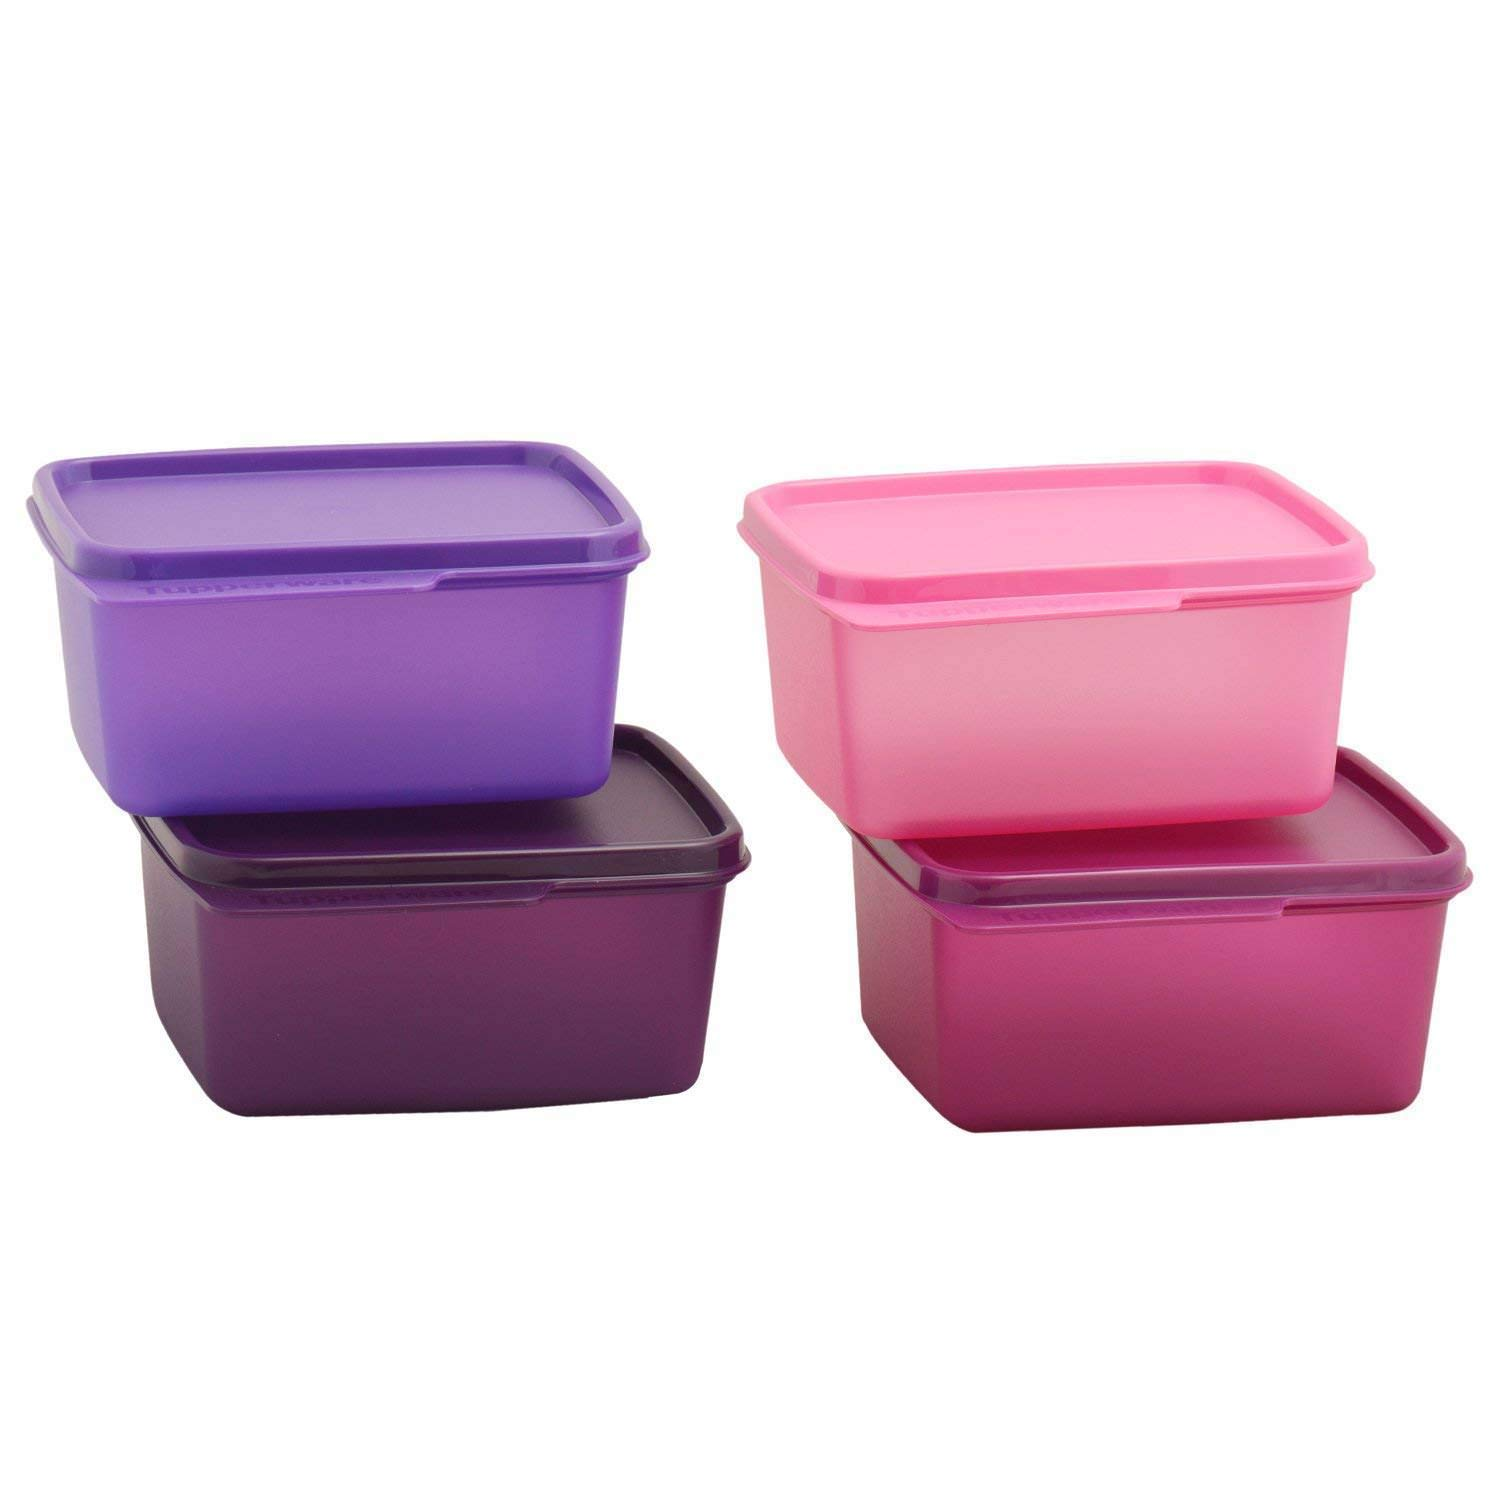 b815a52d45b Buy Tupperware Keep Tab Plastic Container Set